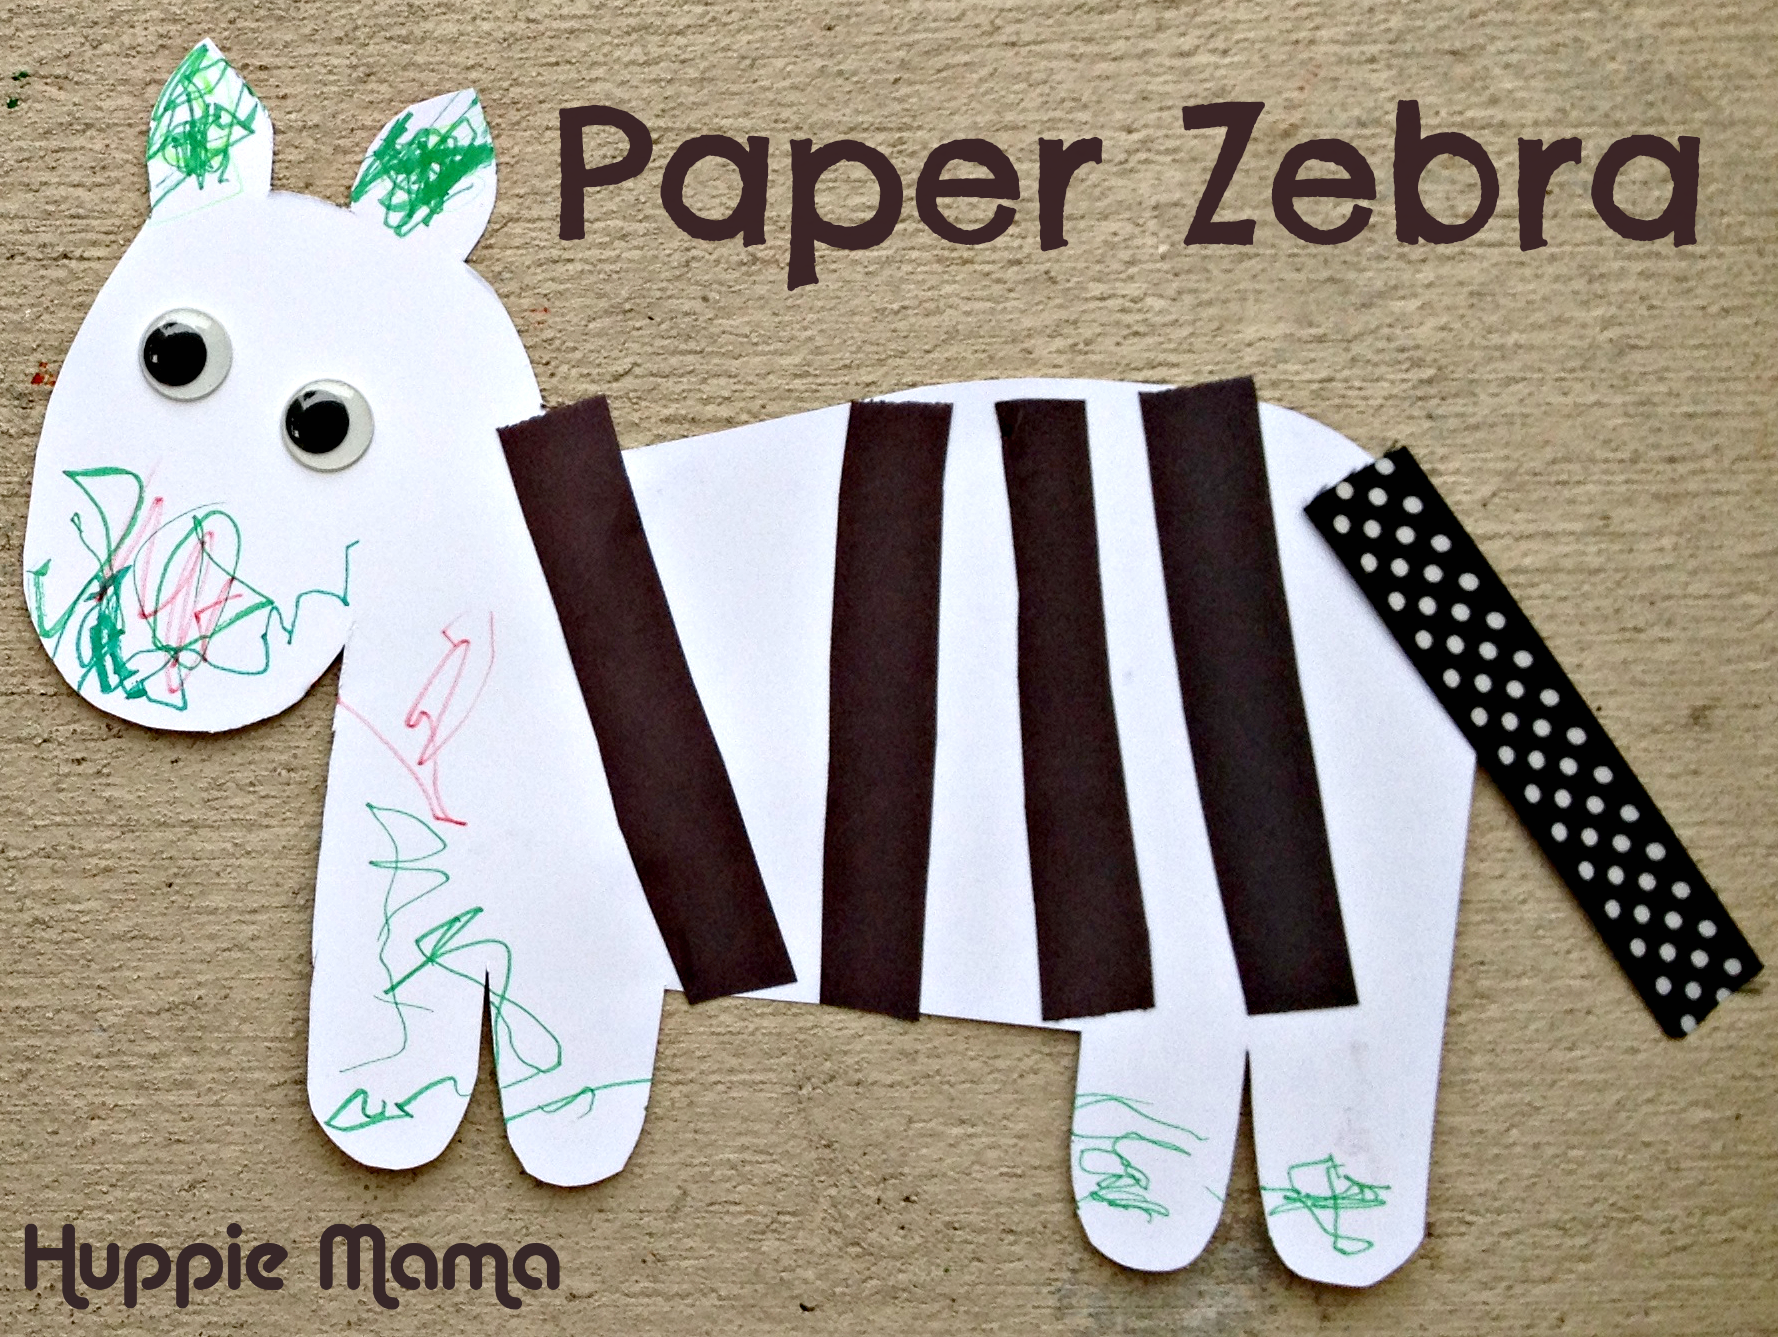 Fun Diy Home Decor Ideas Paper Zebra Our Potluck Family